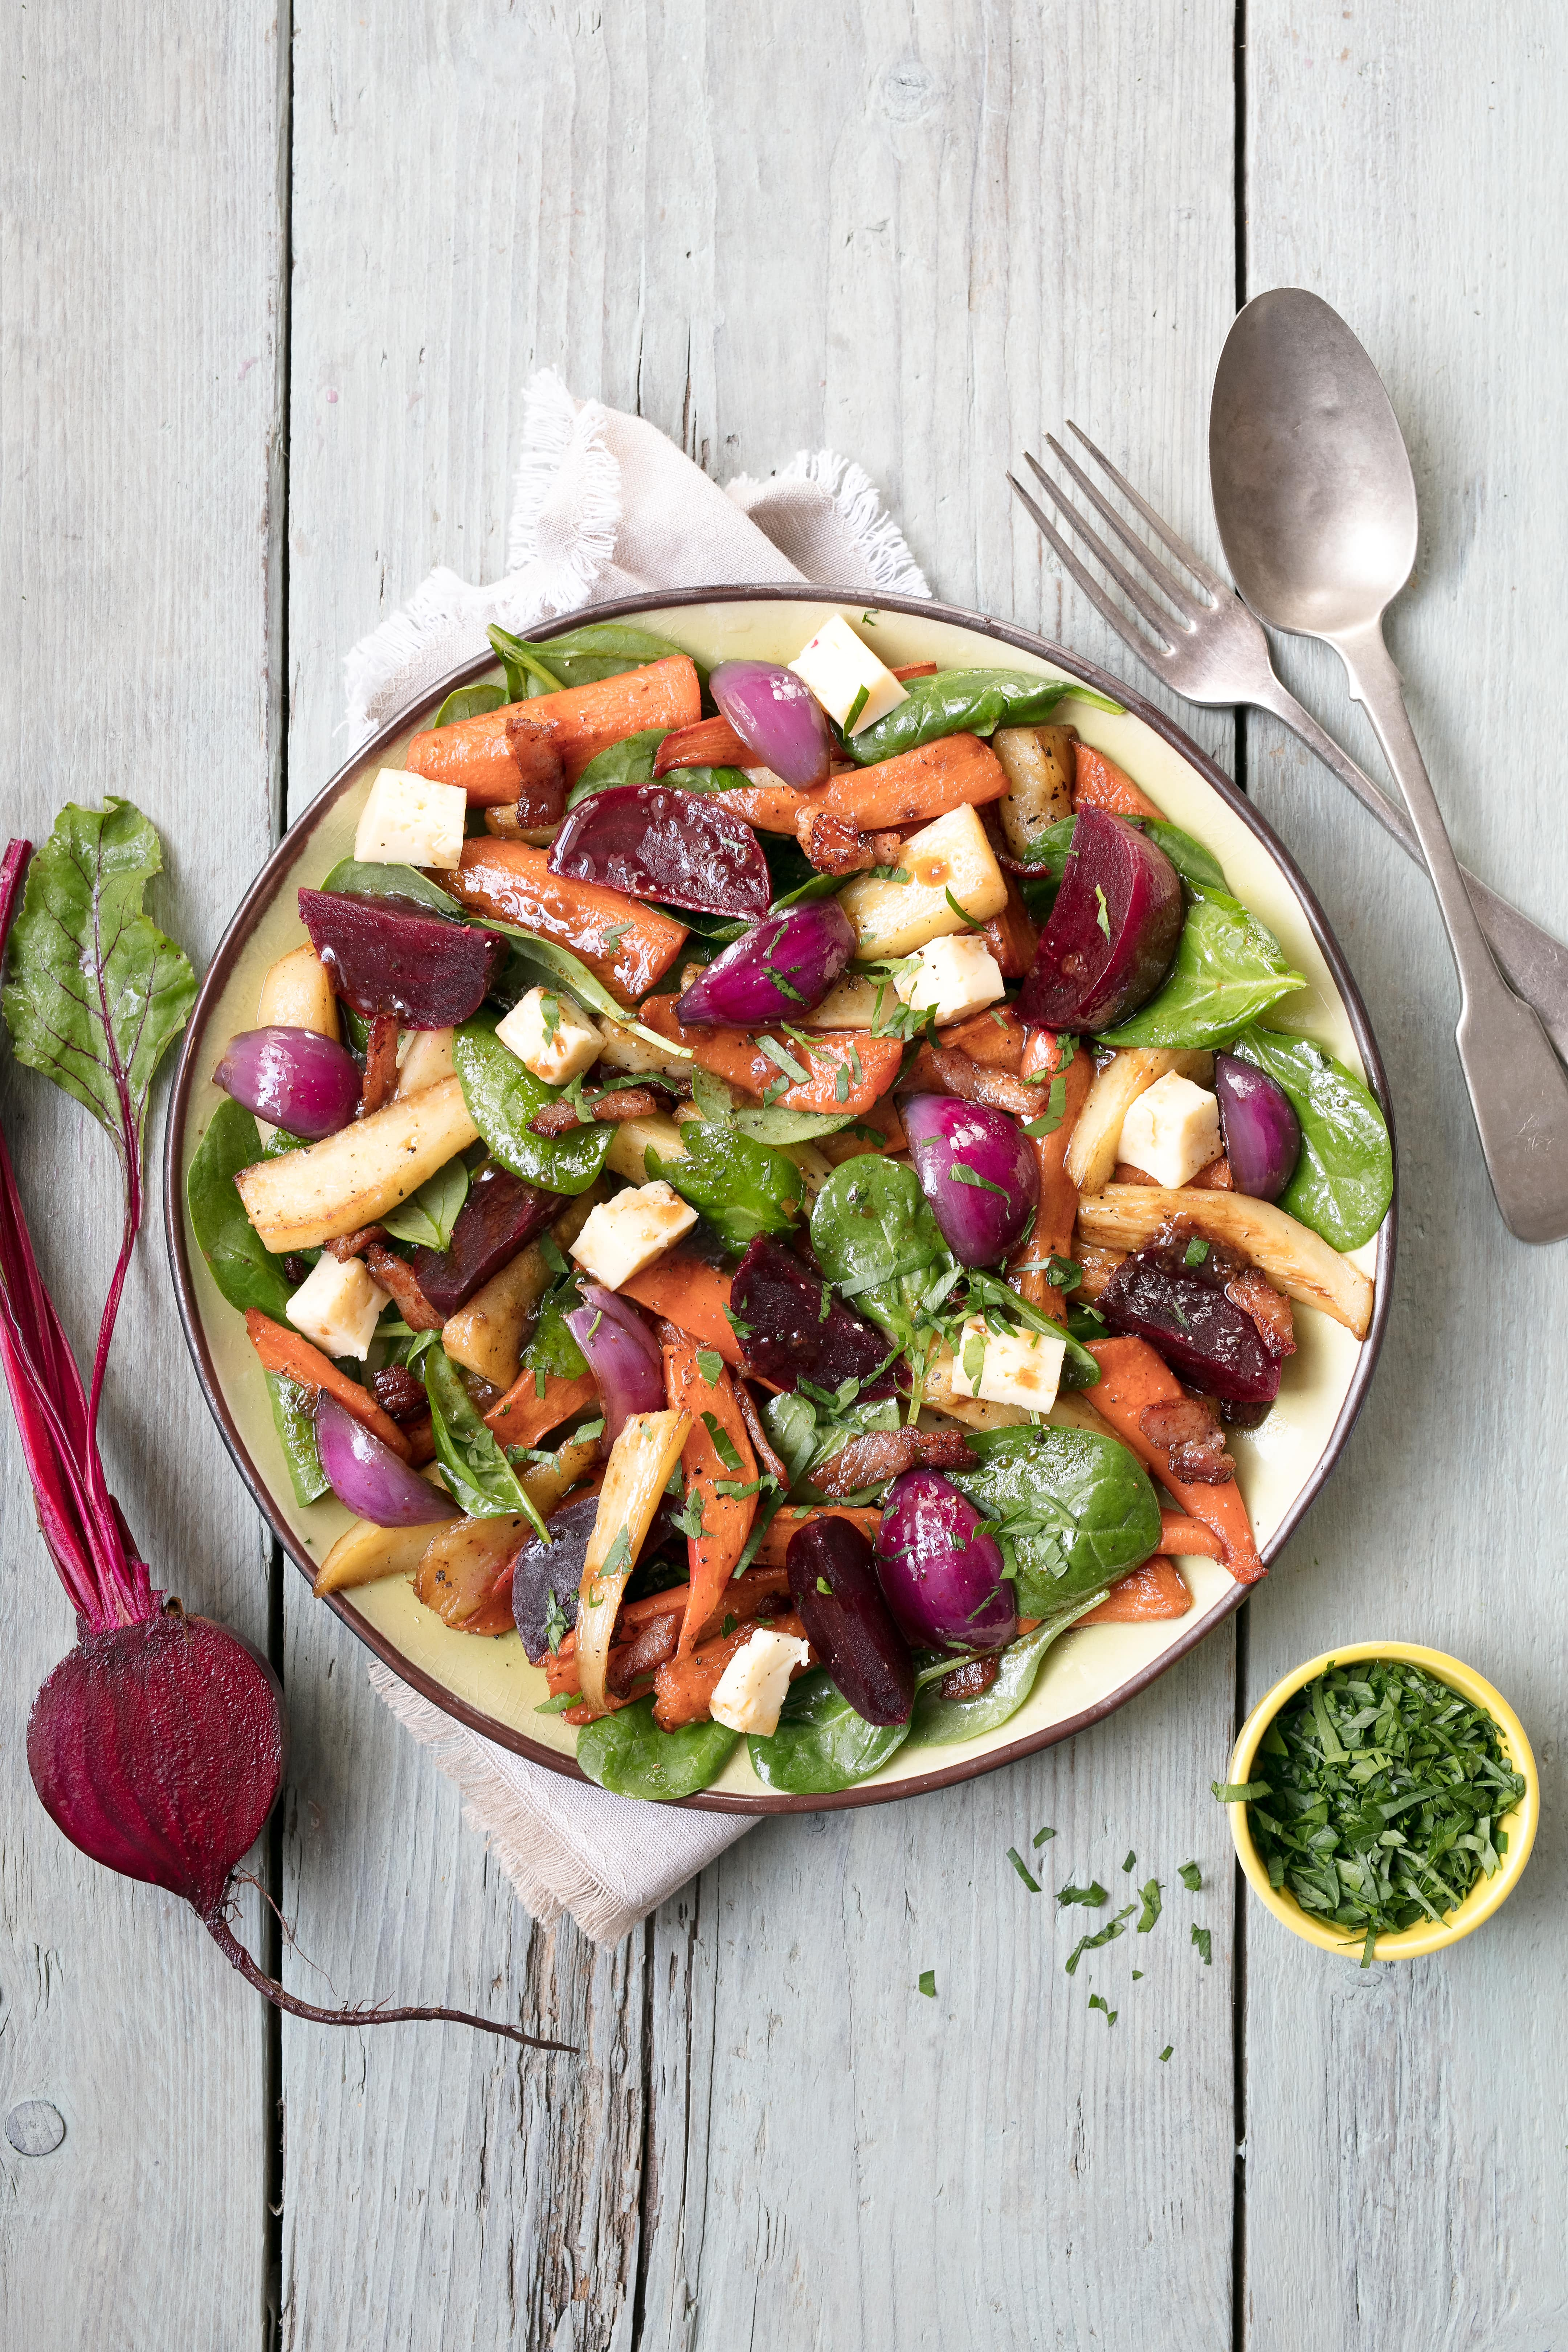 Warm Roasted Carrot, Parsnip and Beetroot Salad